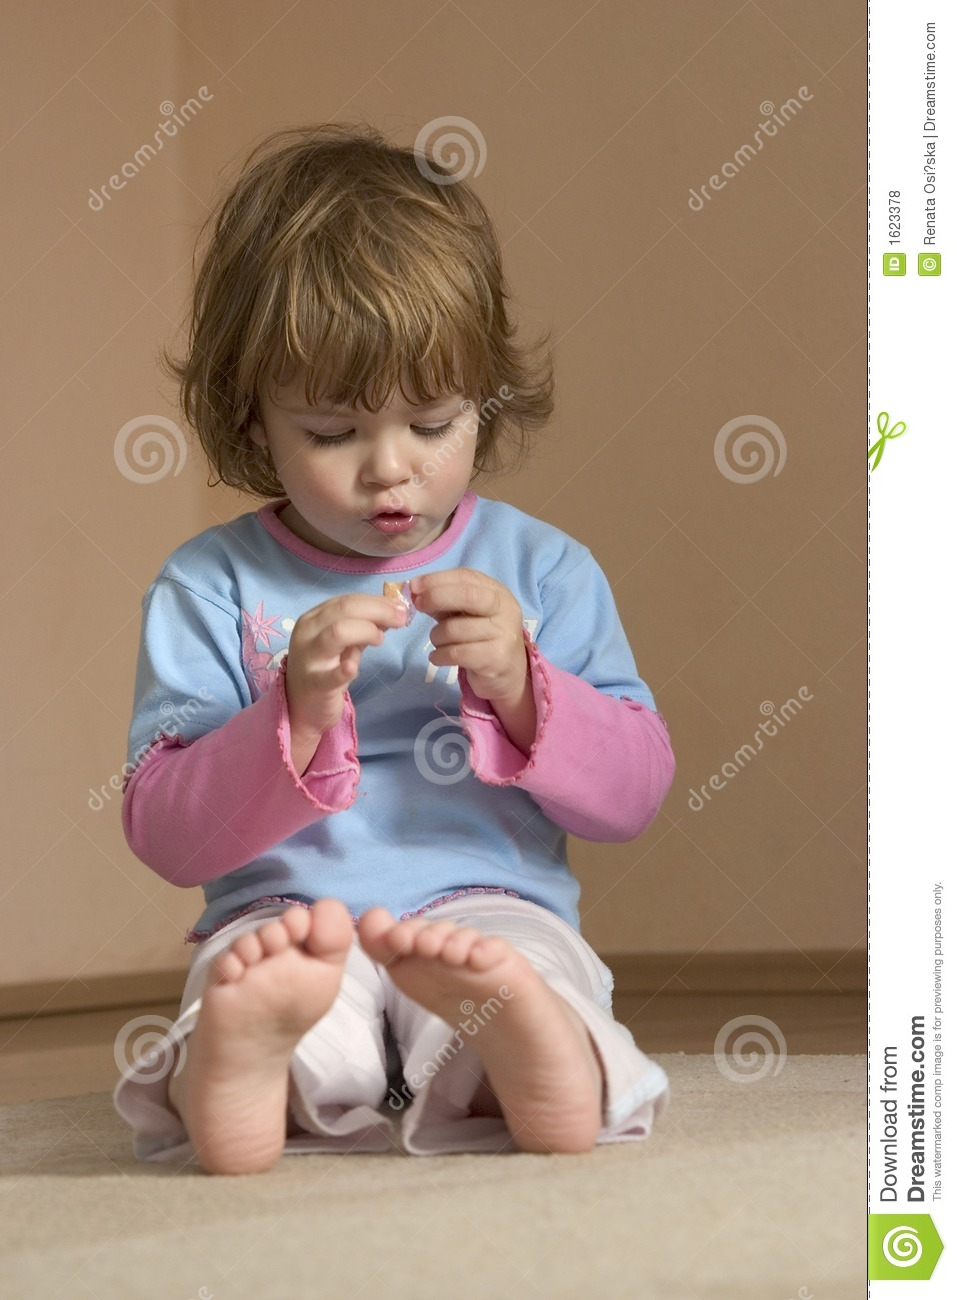 Child Sitting On The Floor Royalty Free Stock Photos